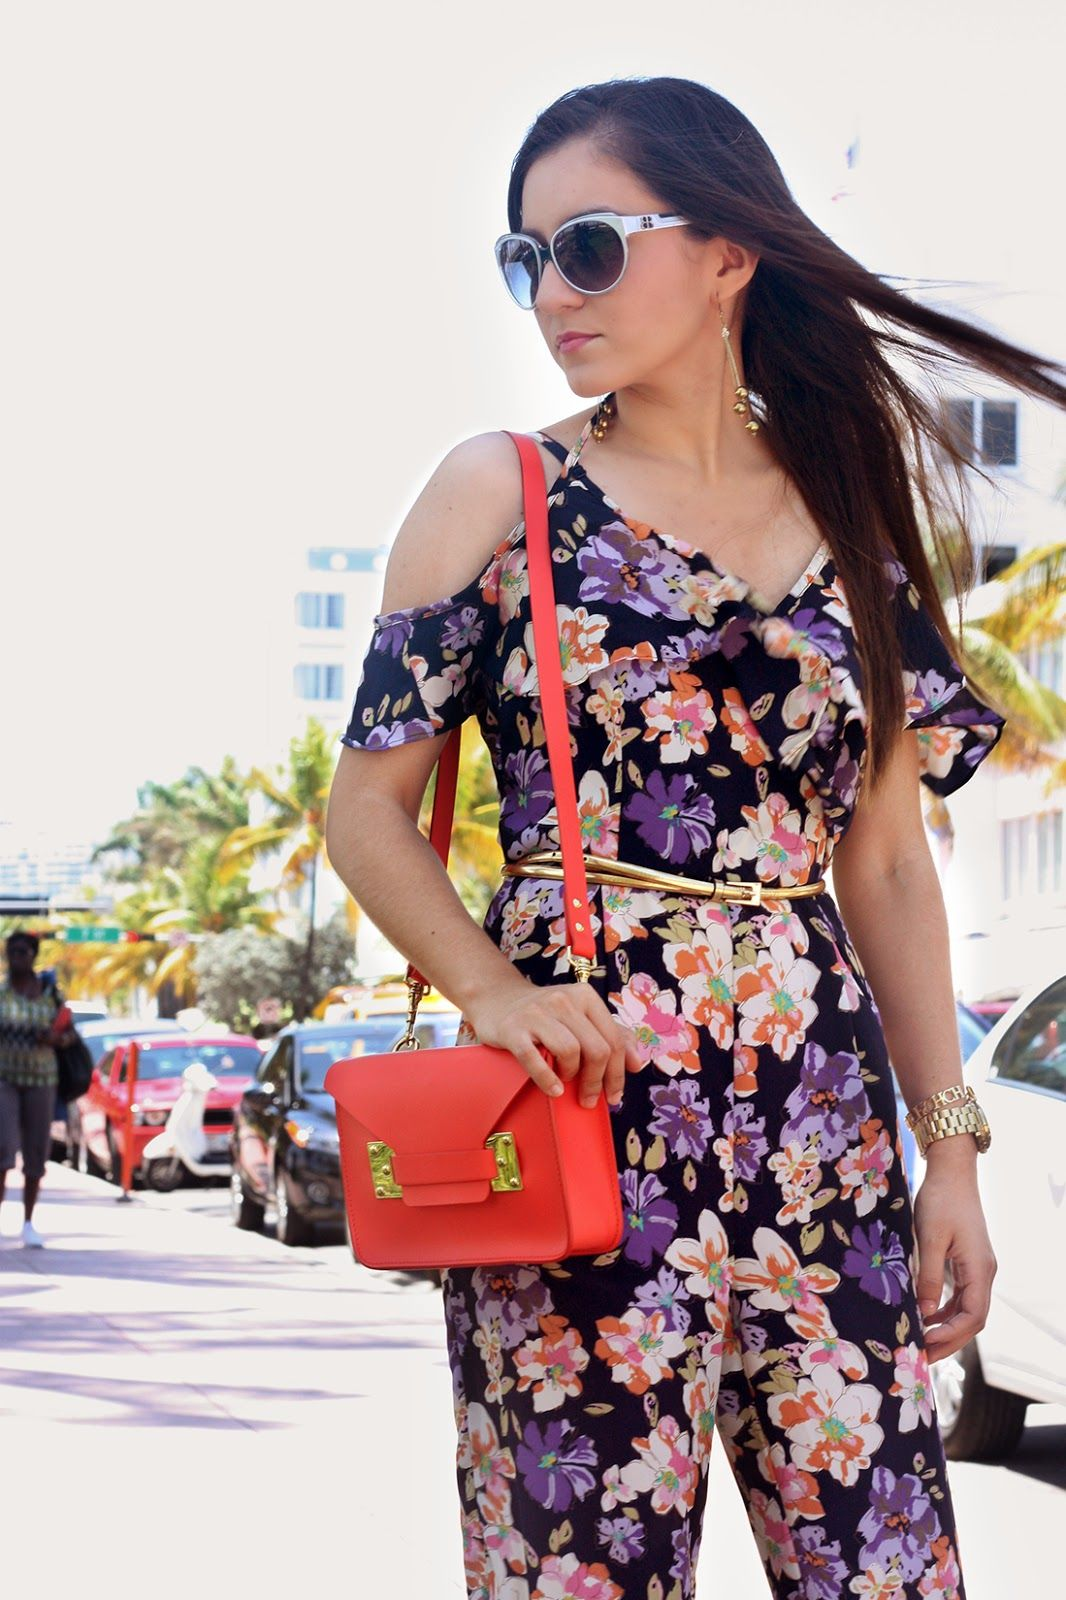 One Thousand Looks: OCEAN DRIVE